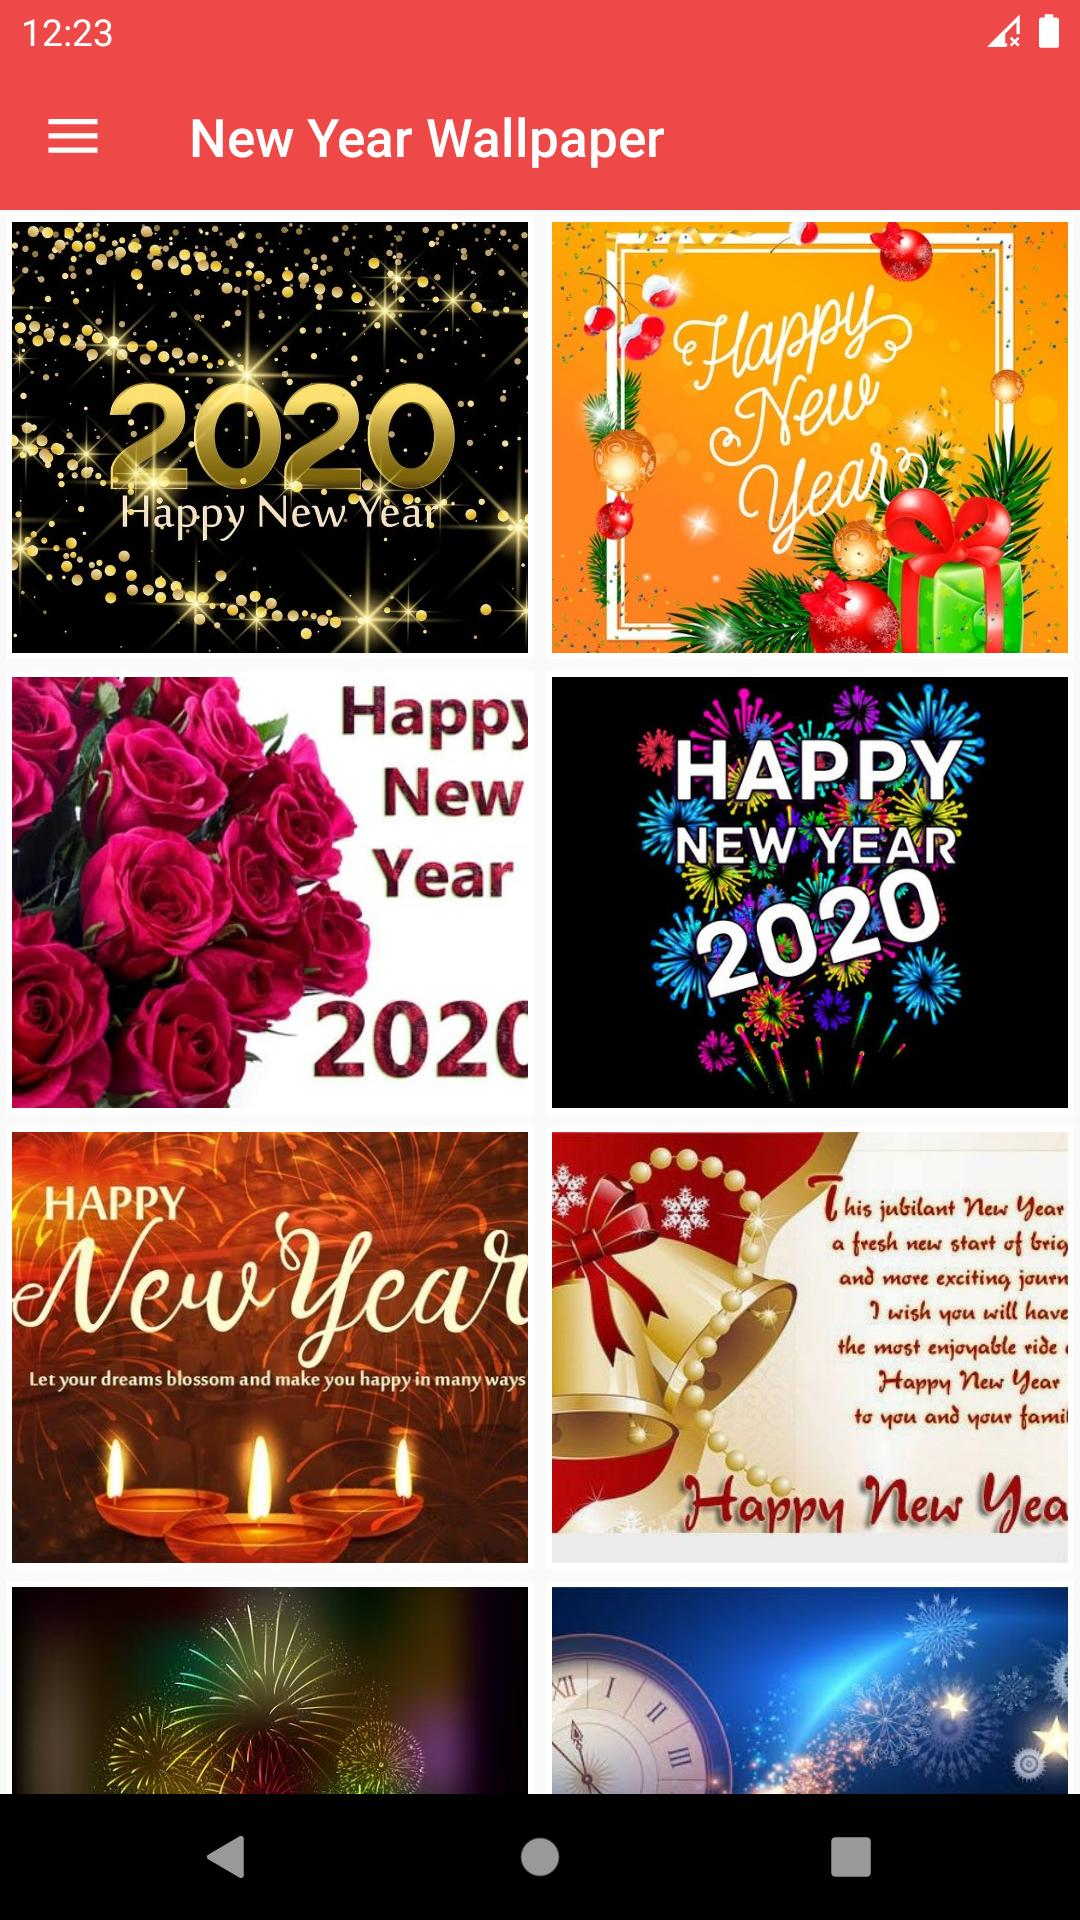 Happy New Year Wallpaper 2020 for Android   APK Download 1080x1920